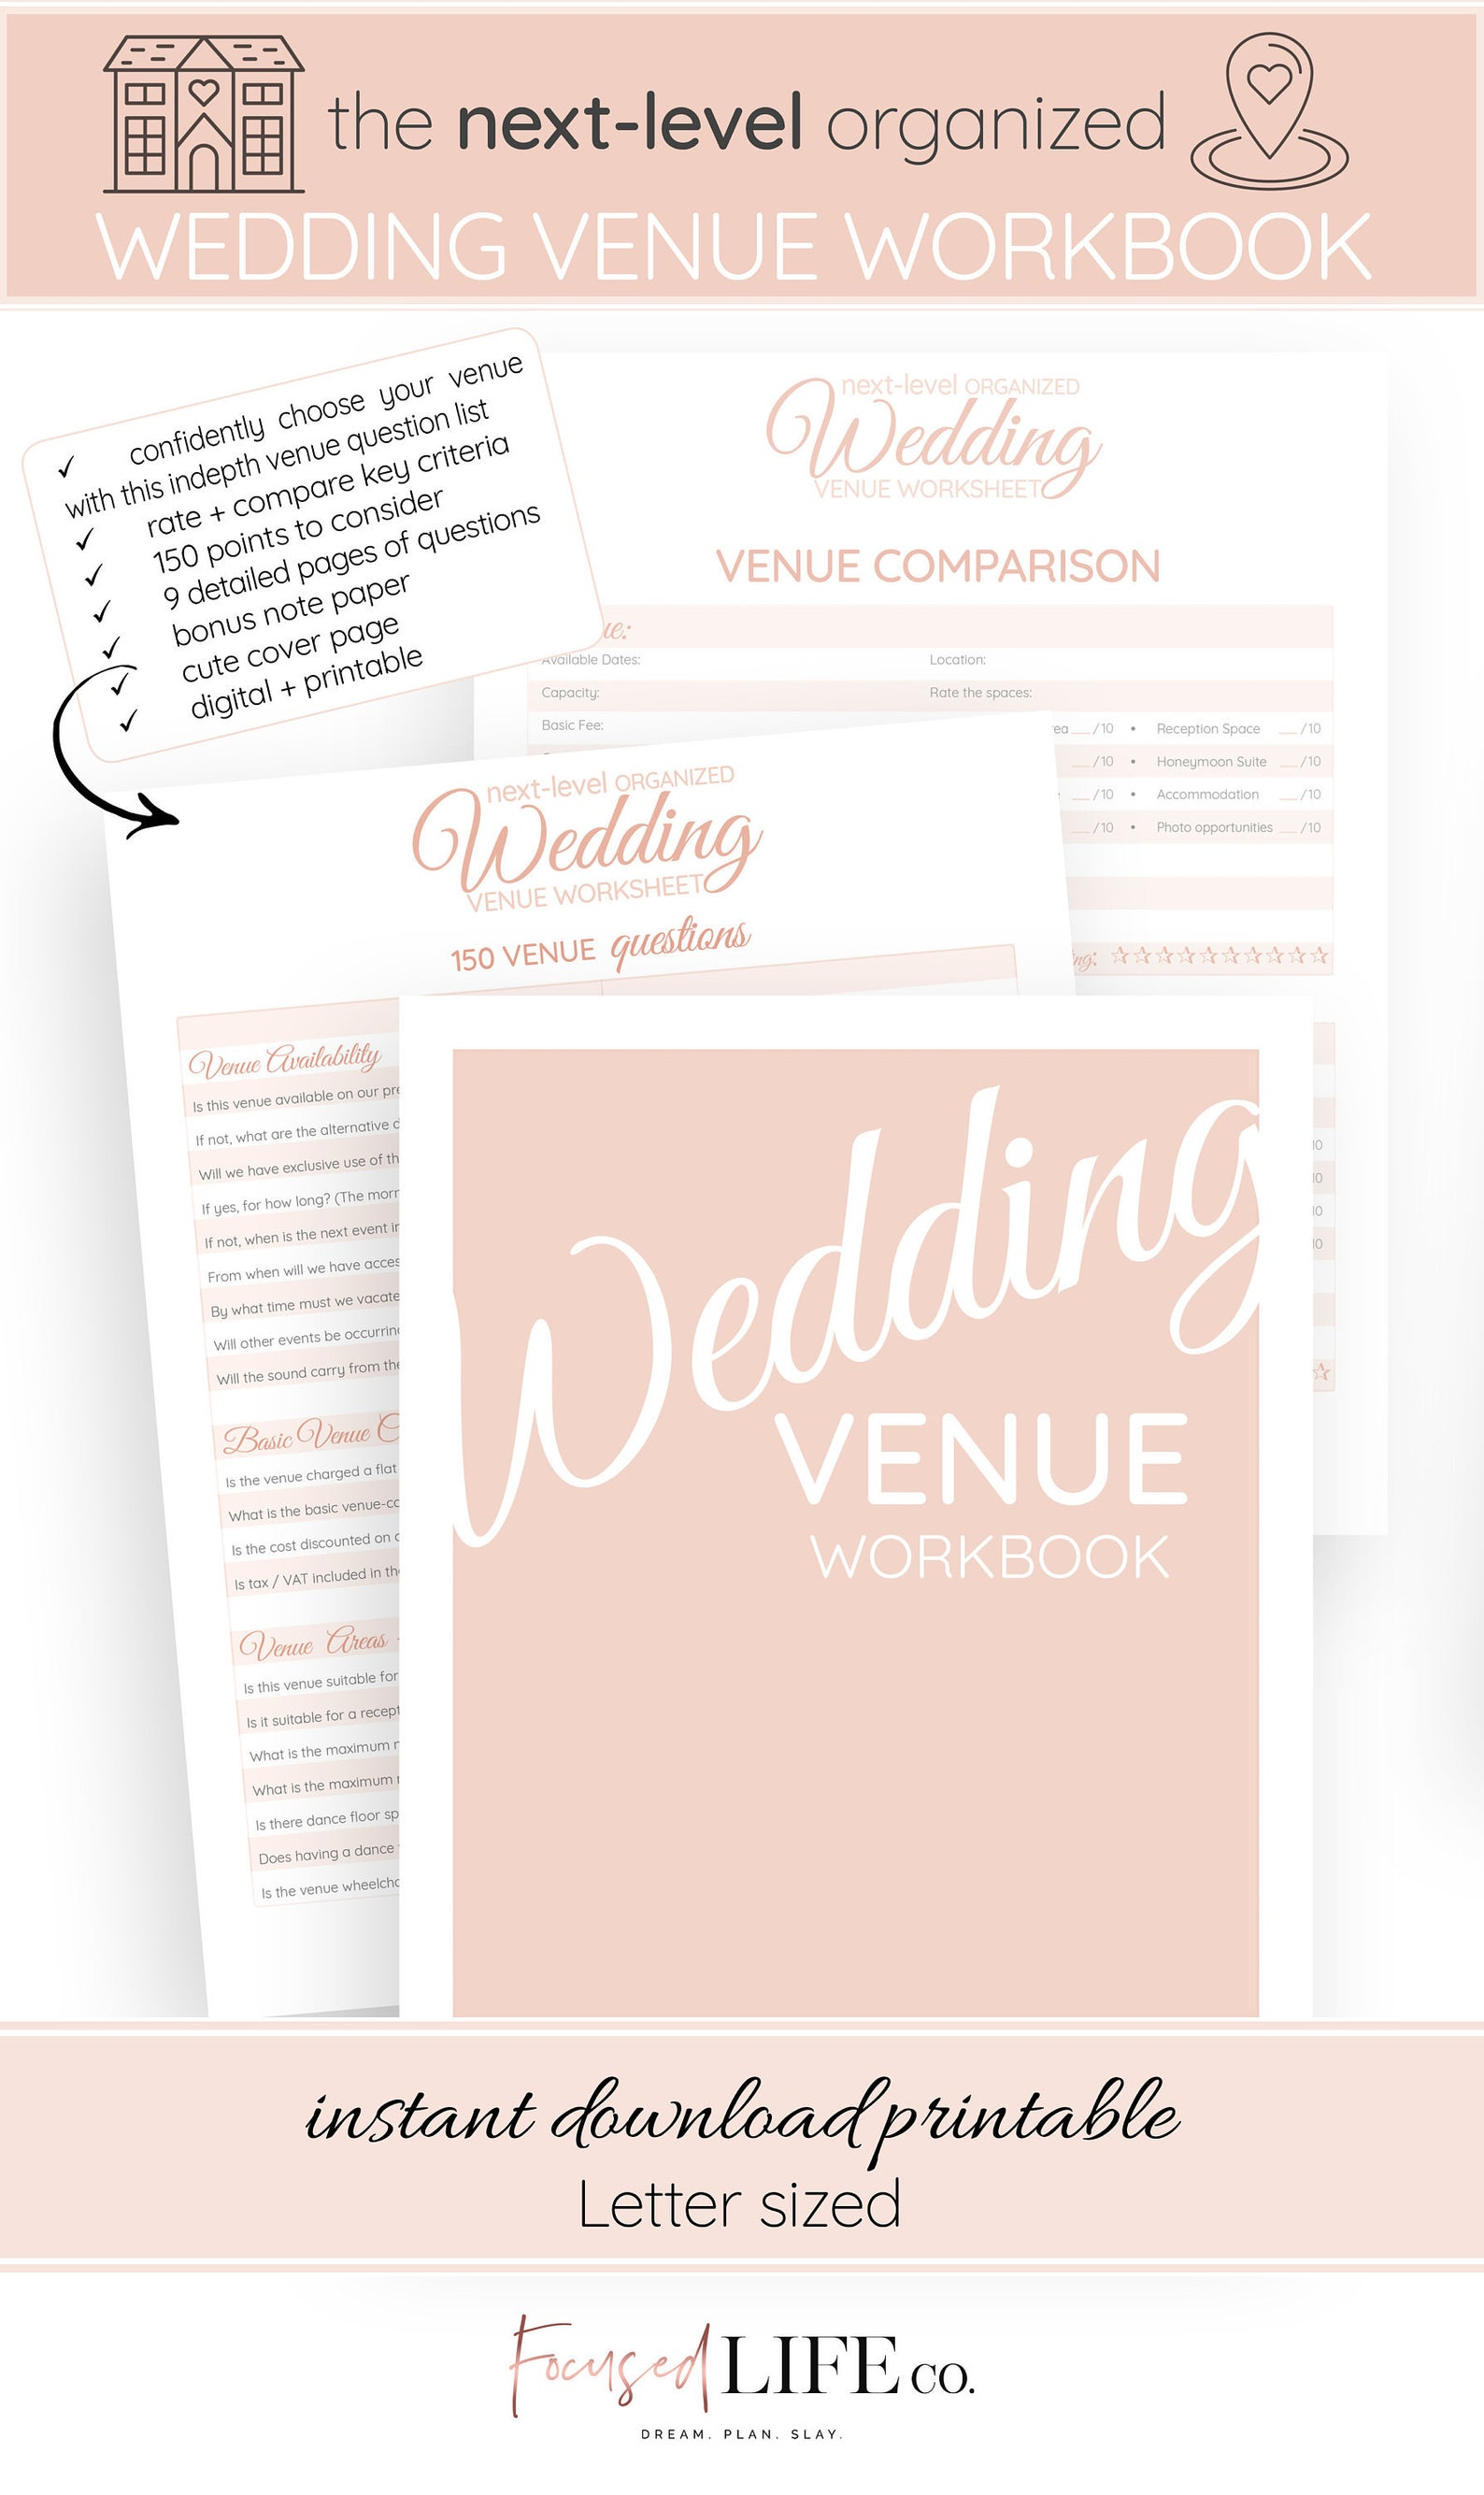 Wedding Venue Questions Workbook